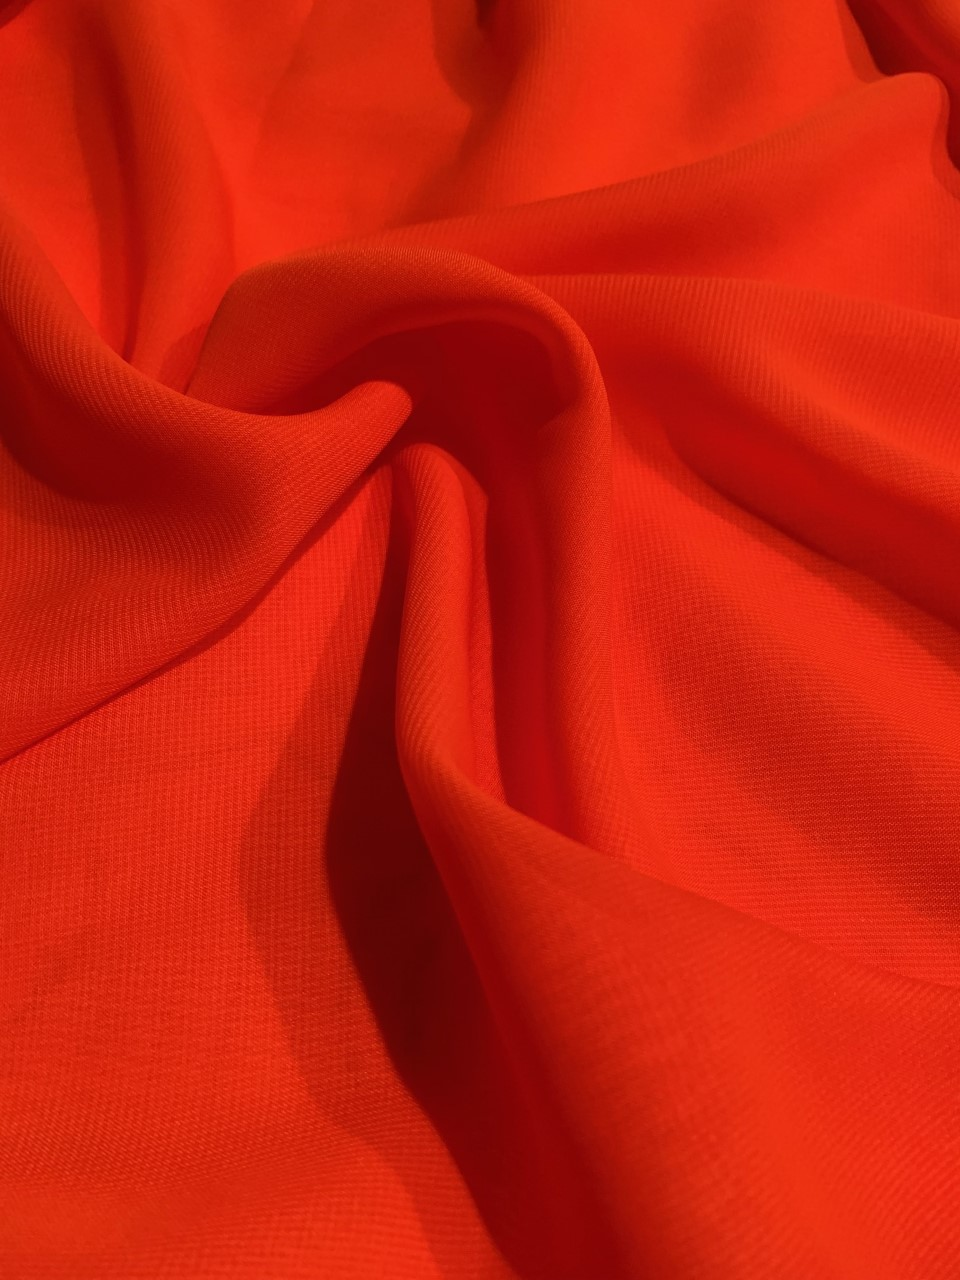 "58"" Orange Chiffon Fabric By The Yard - Polyester"